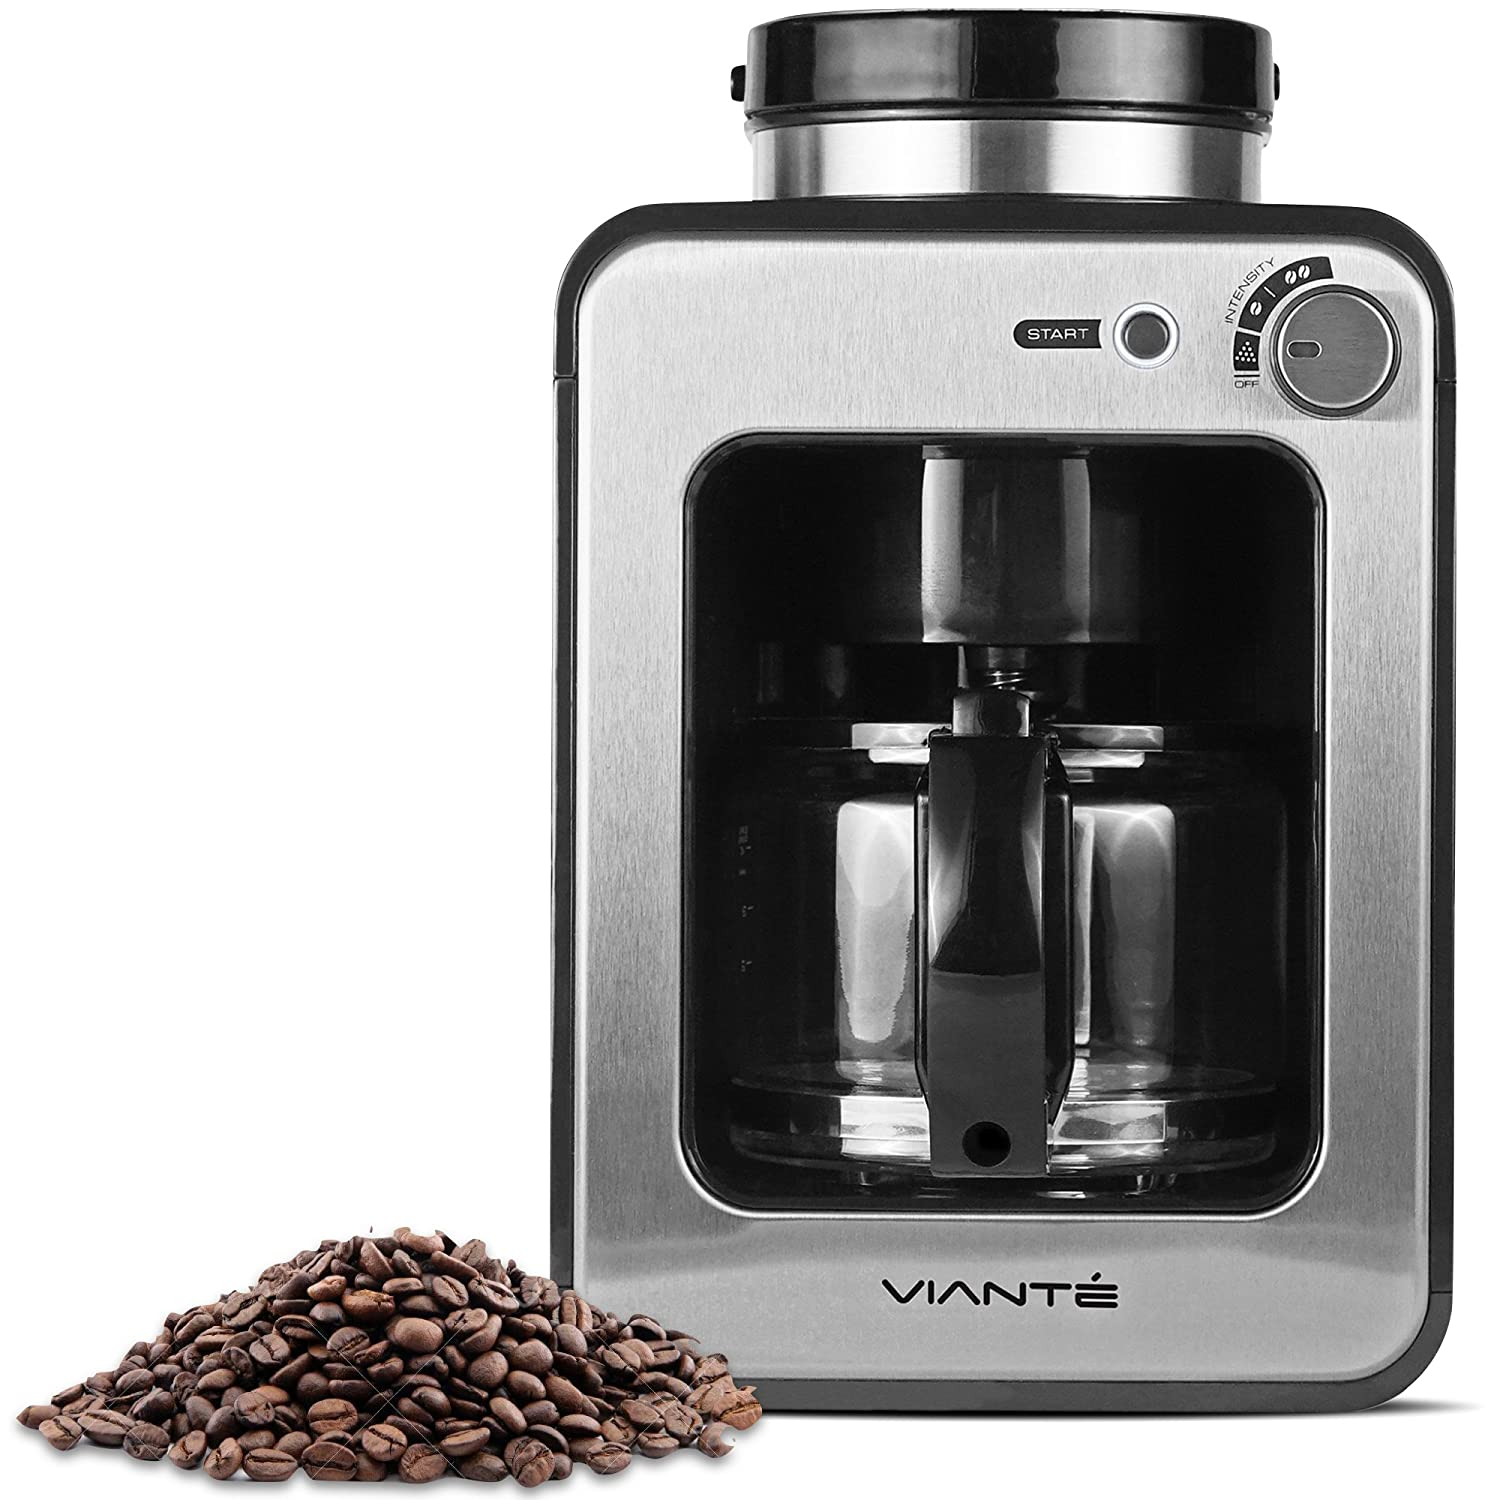 Viante CAF-50 Grind and Brew Coffee Maker